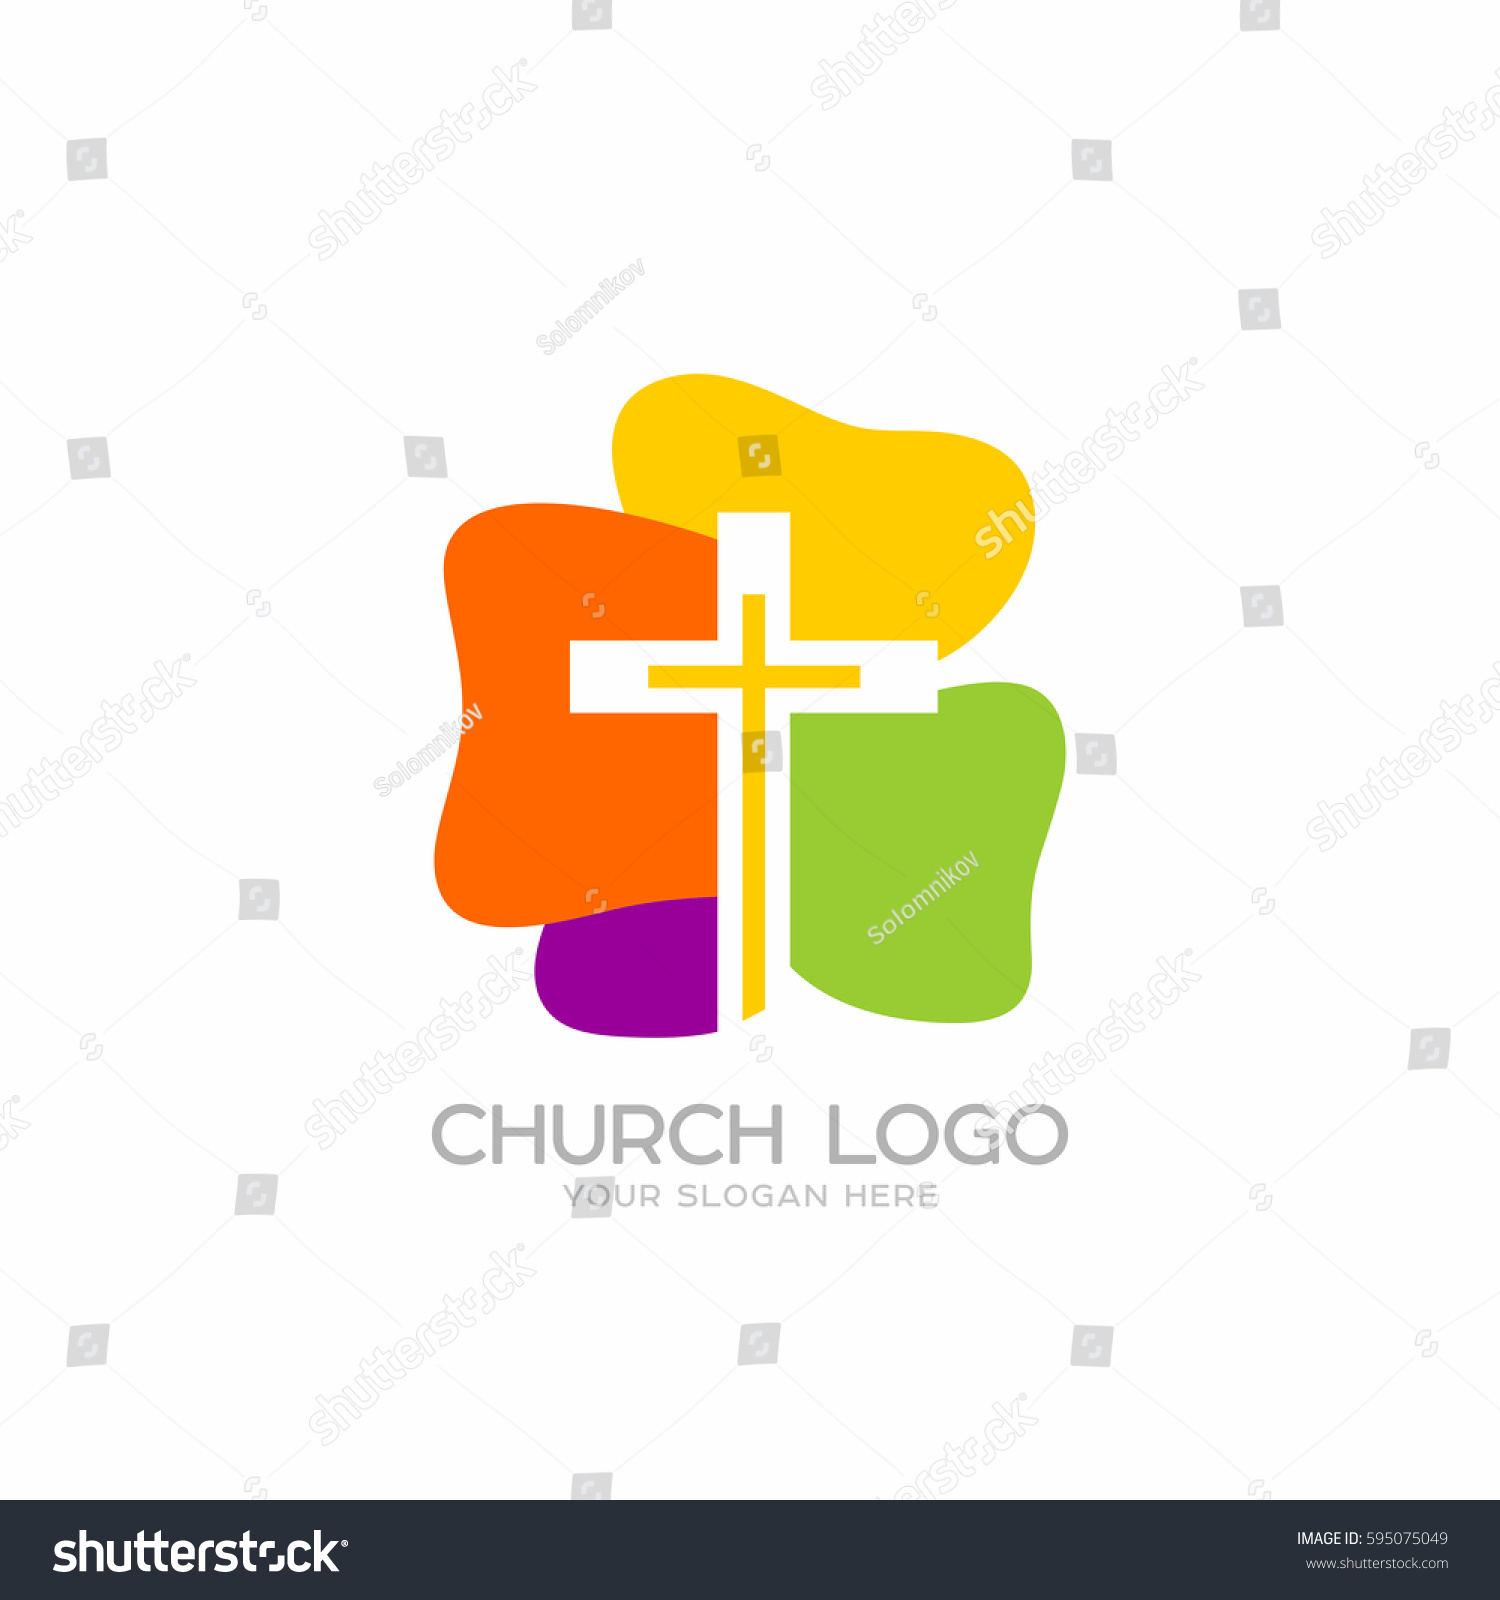 Church logo christian symbols cross lord stock vector 595075049 christian symbols cross of the lord and savior jesus christ biocorpaavc Image collections